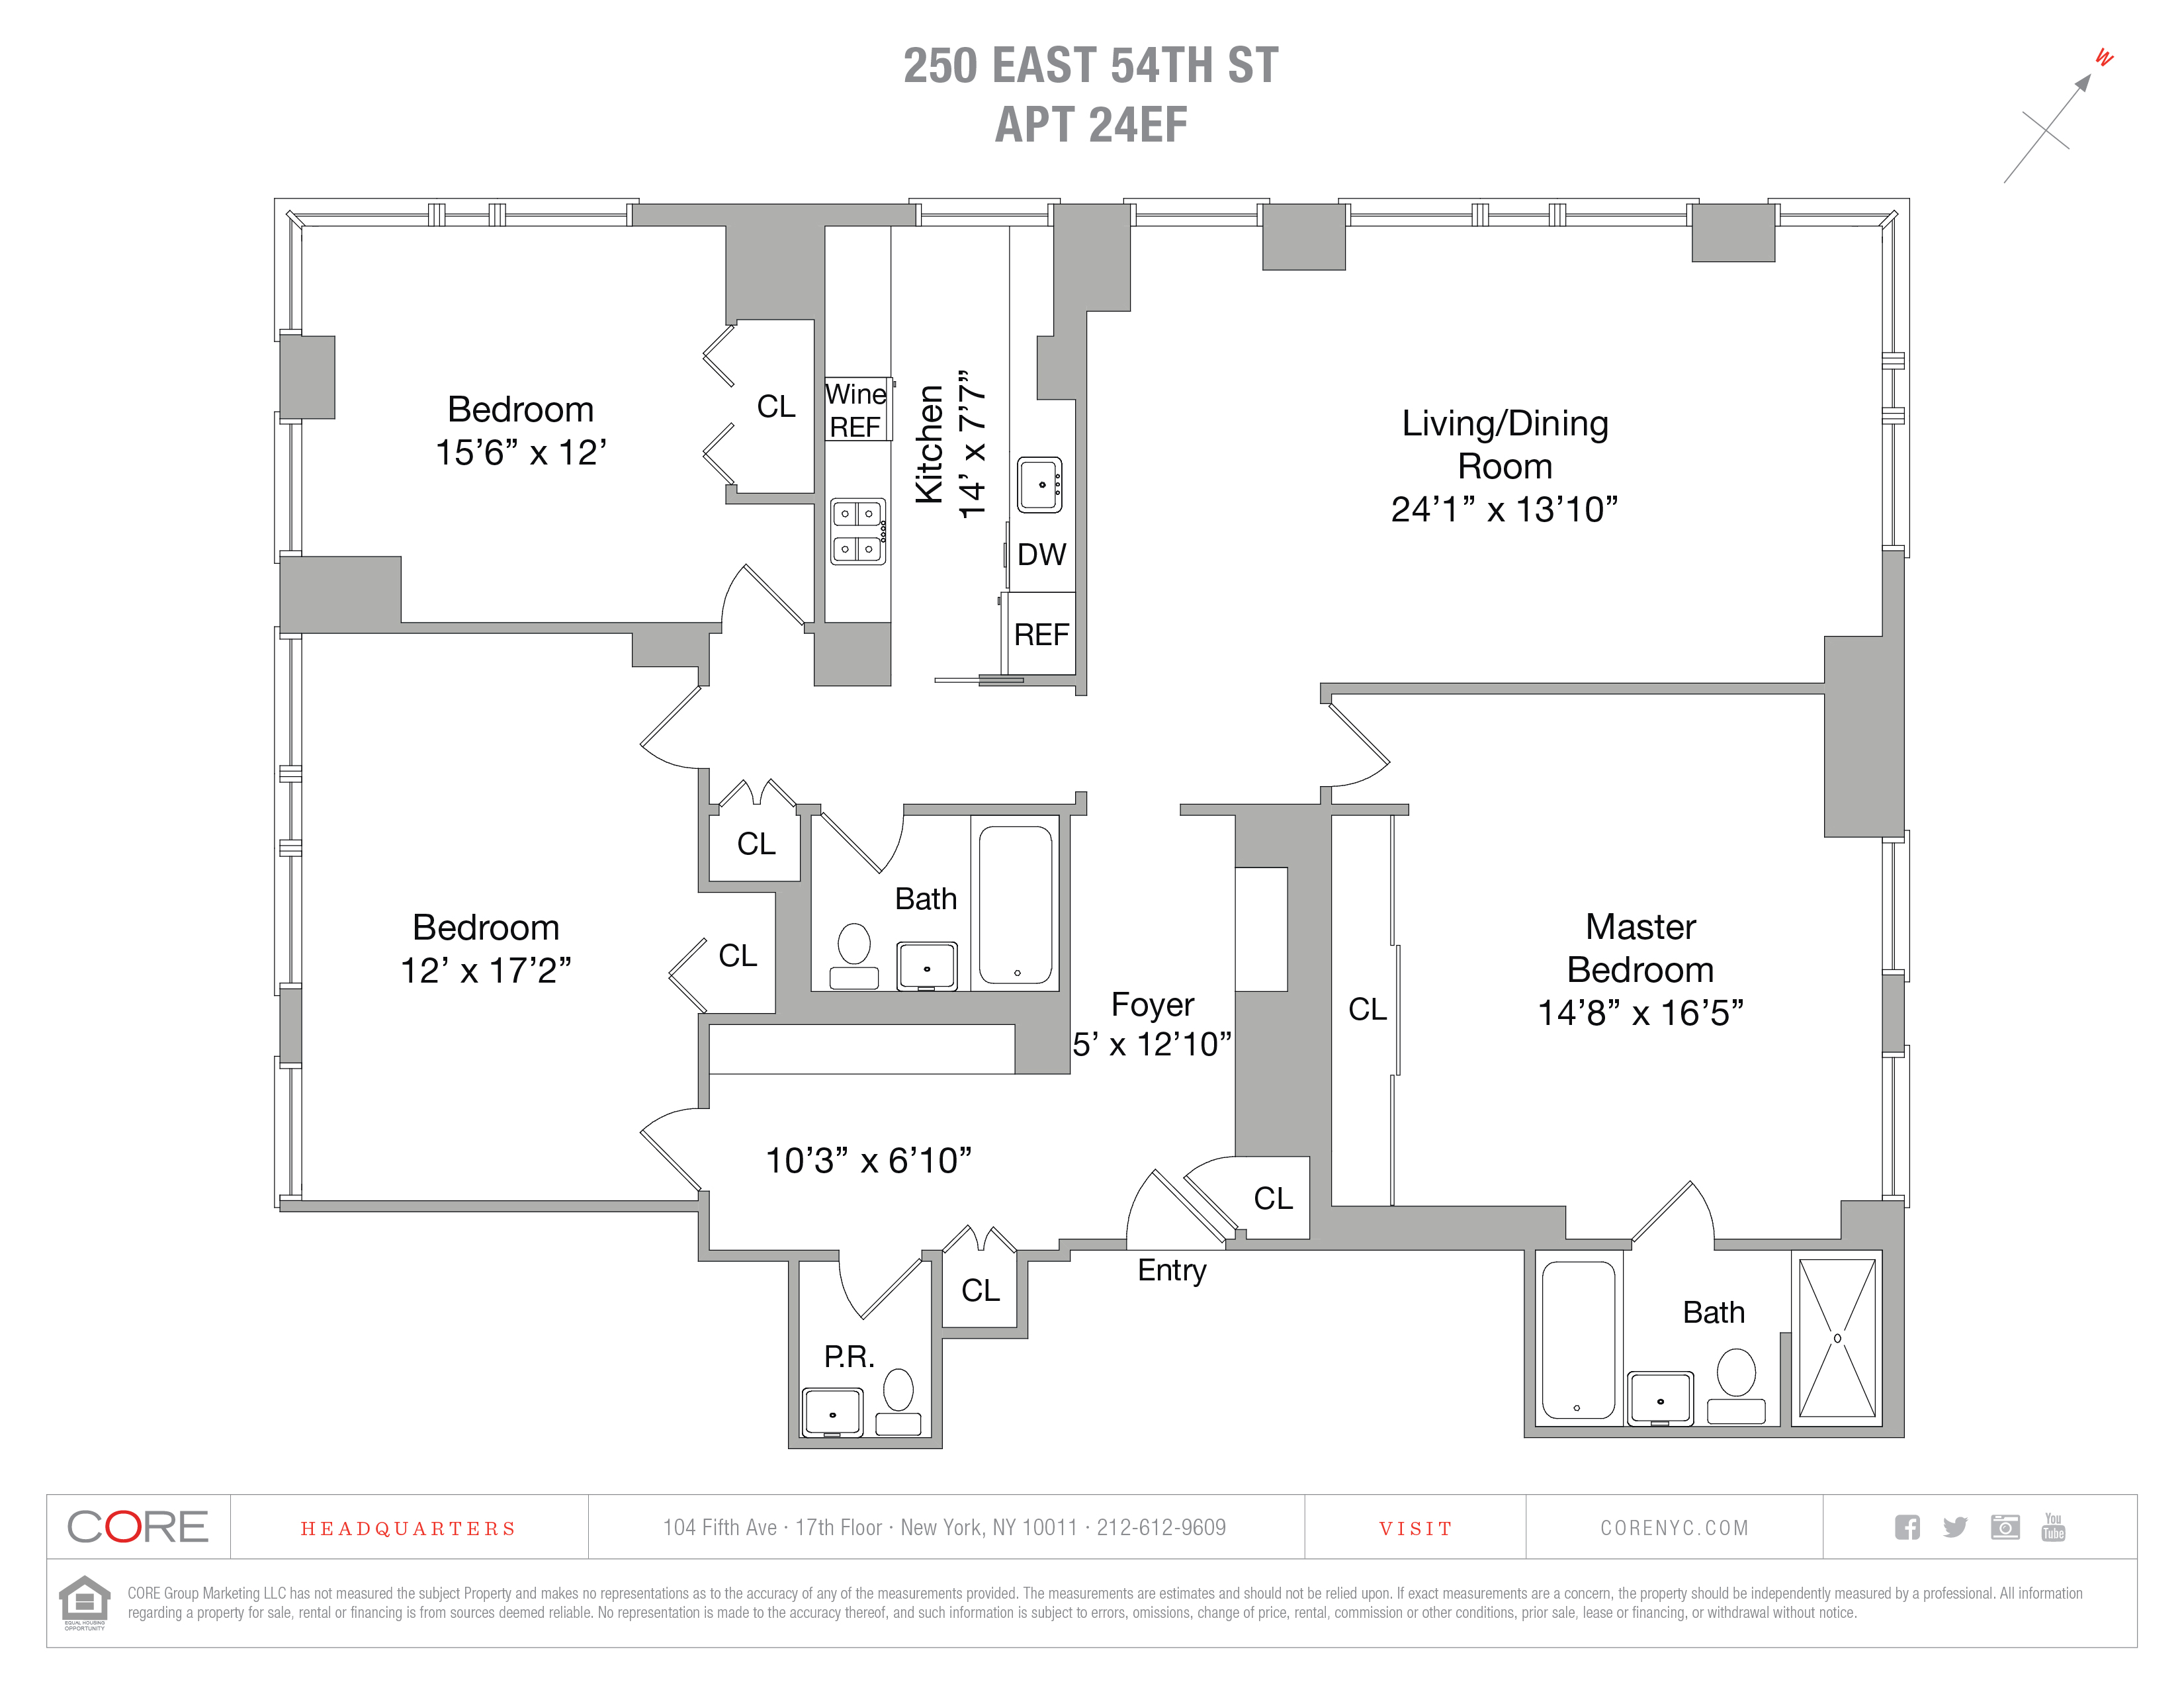 250 East 54th St. 24EF, New York, NY 10022